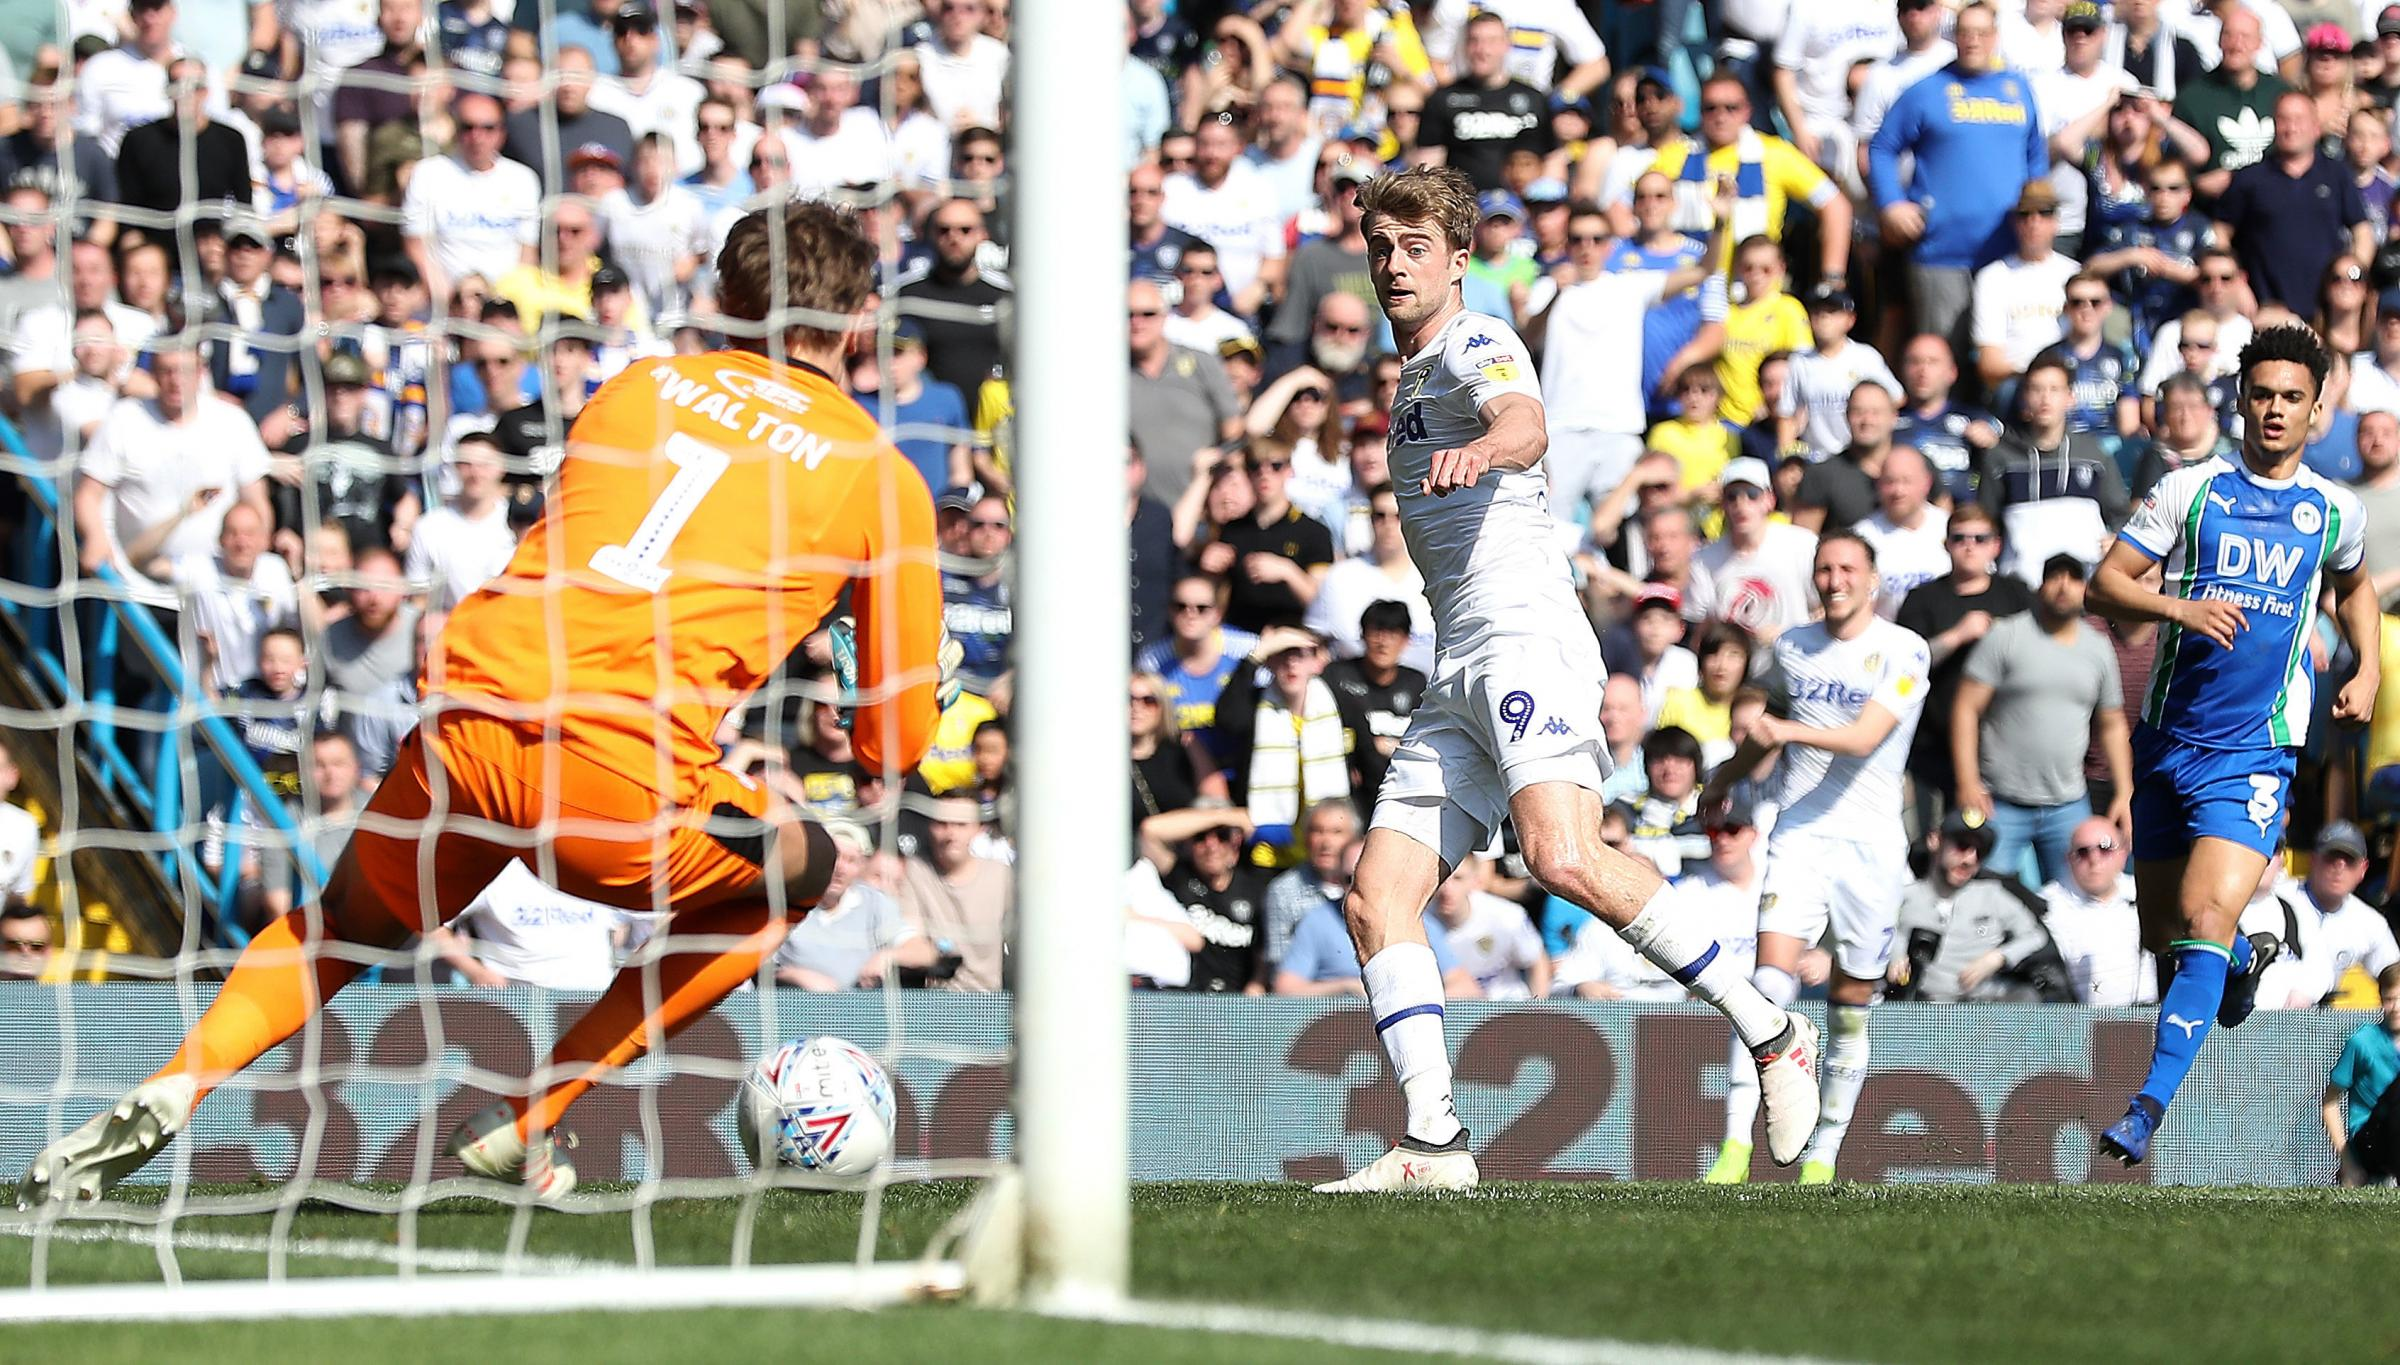 Leeds United's Patrick Bamford scores past Wigan Athletic goalkeeper Christian Walton, during the Championship match at Elland Road